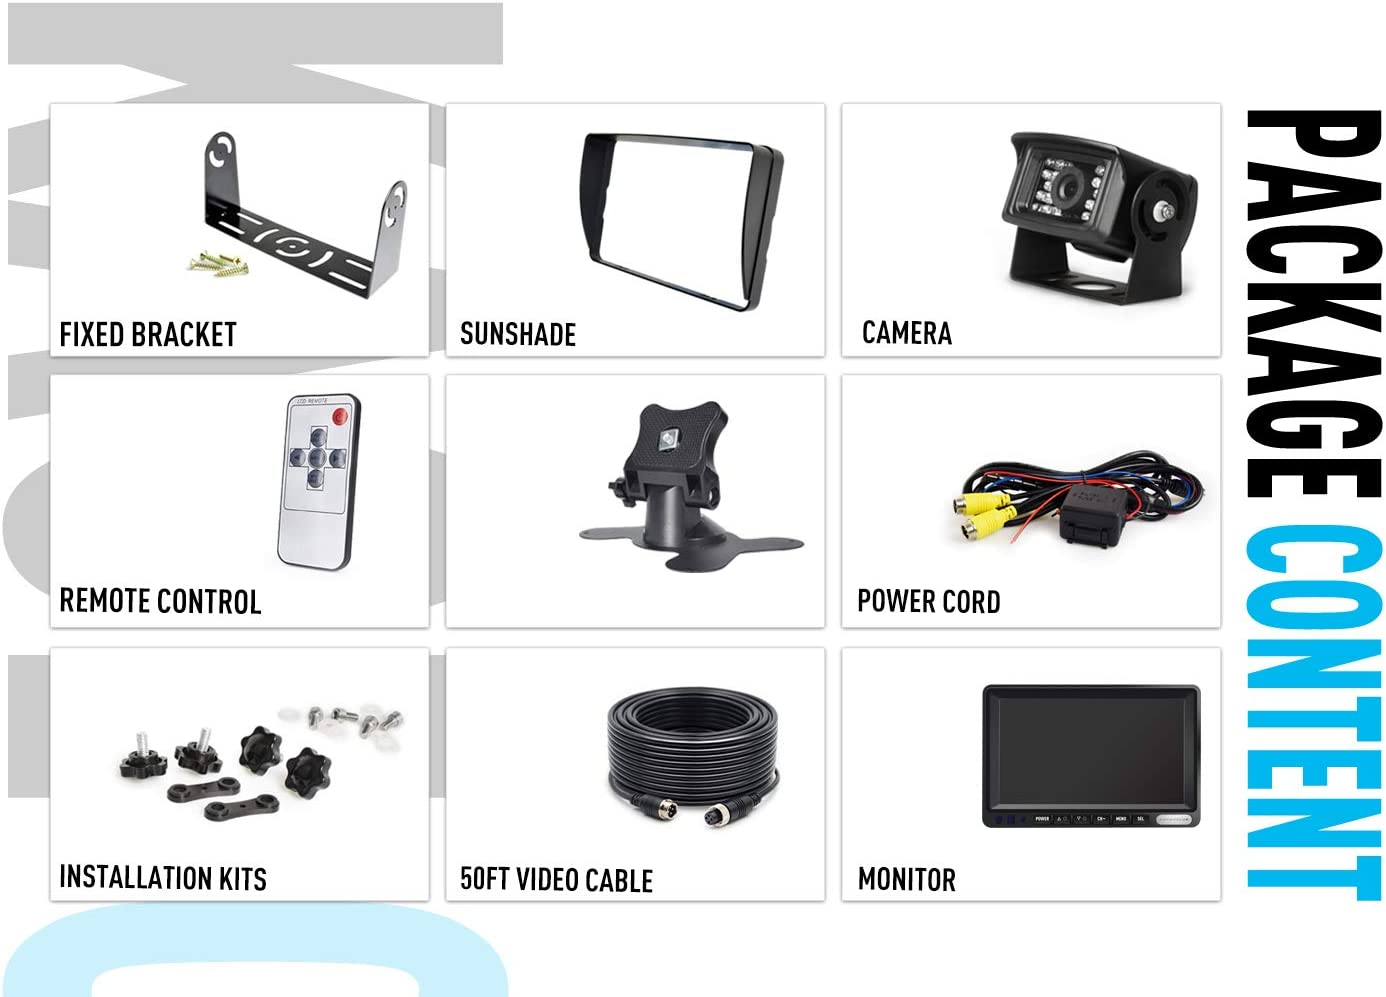 100/% Not Wash Up,IP69 Waterproof Rear View Camera ZEROXCLUB Backup Camera System Kit,Sharp CCD Chip ERY01-Wired 7/'/' LCD Reversing Monitor for Truck//Semi-Trailer//Box Truck//RV